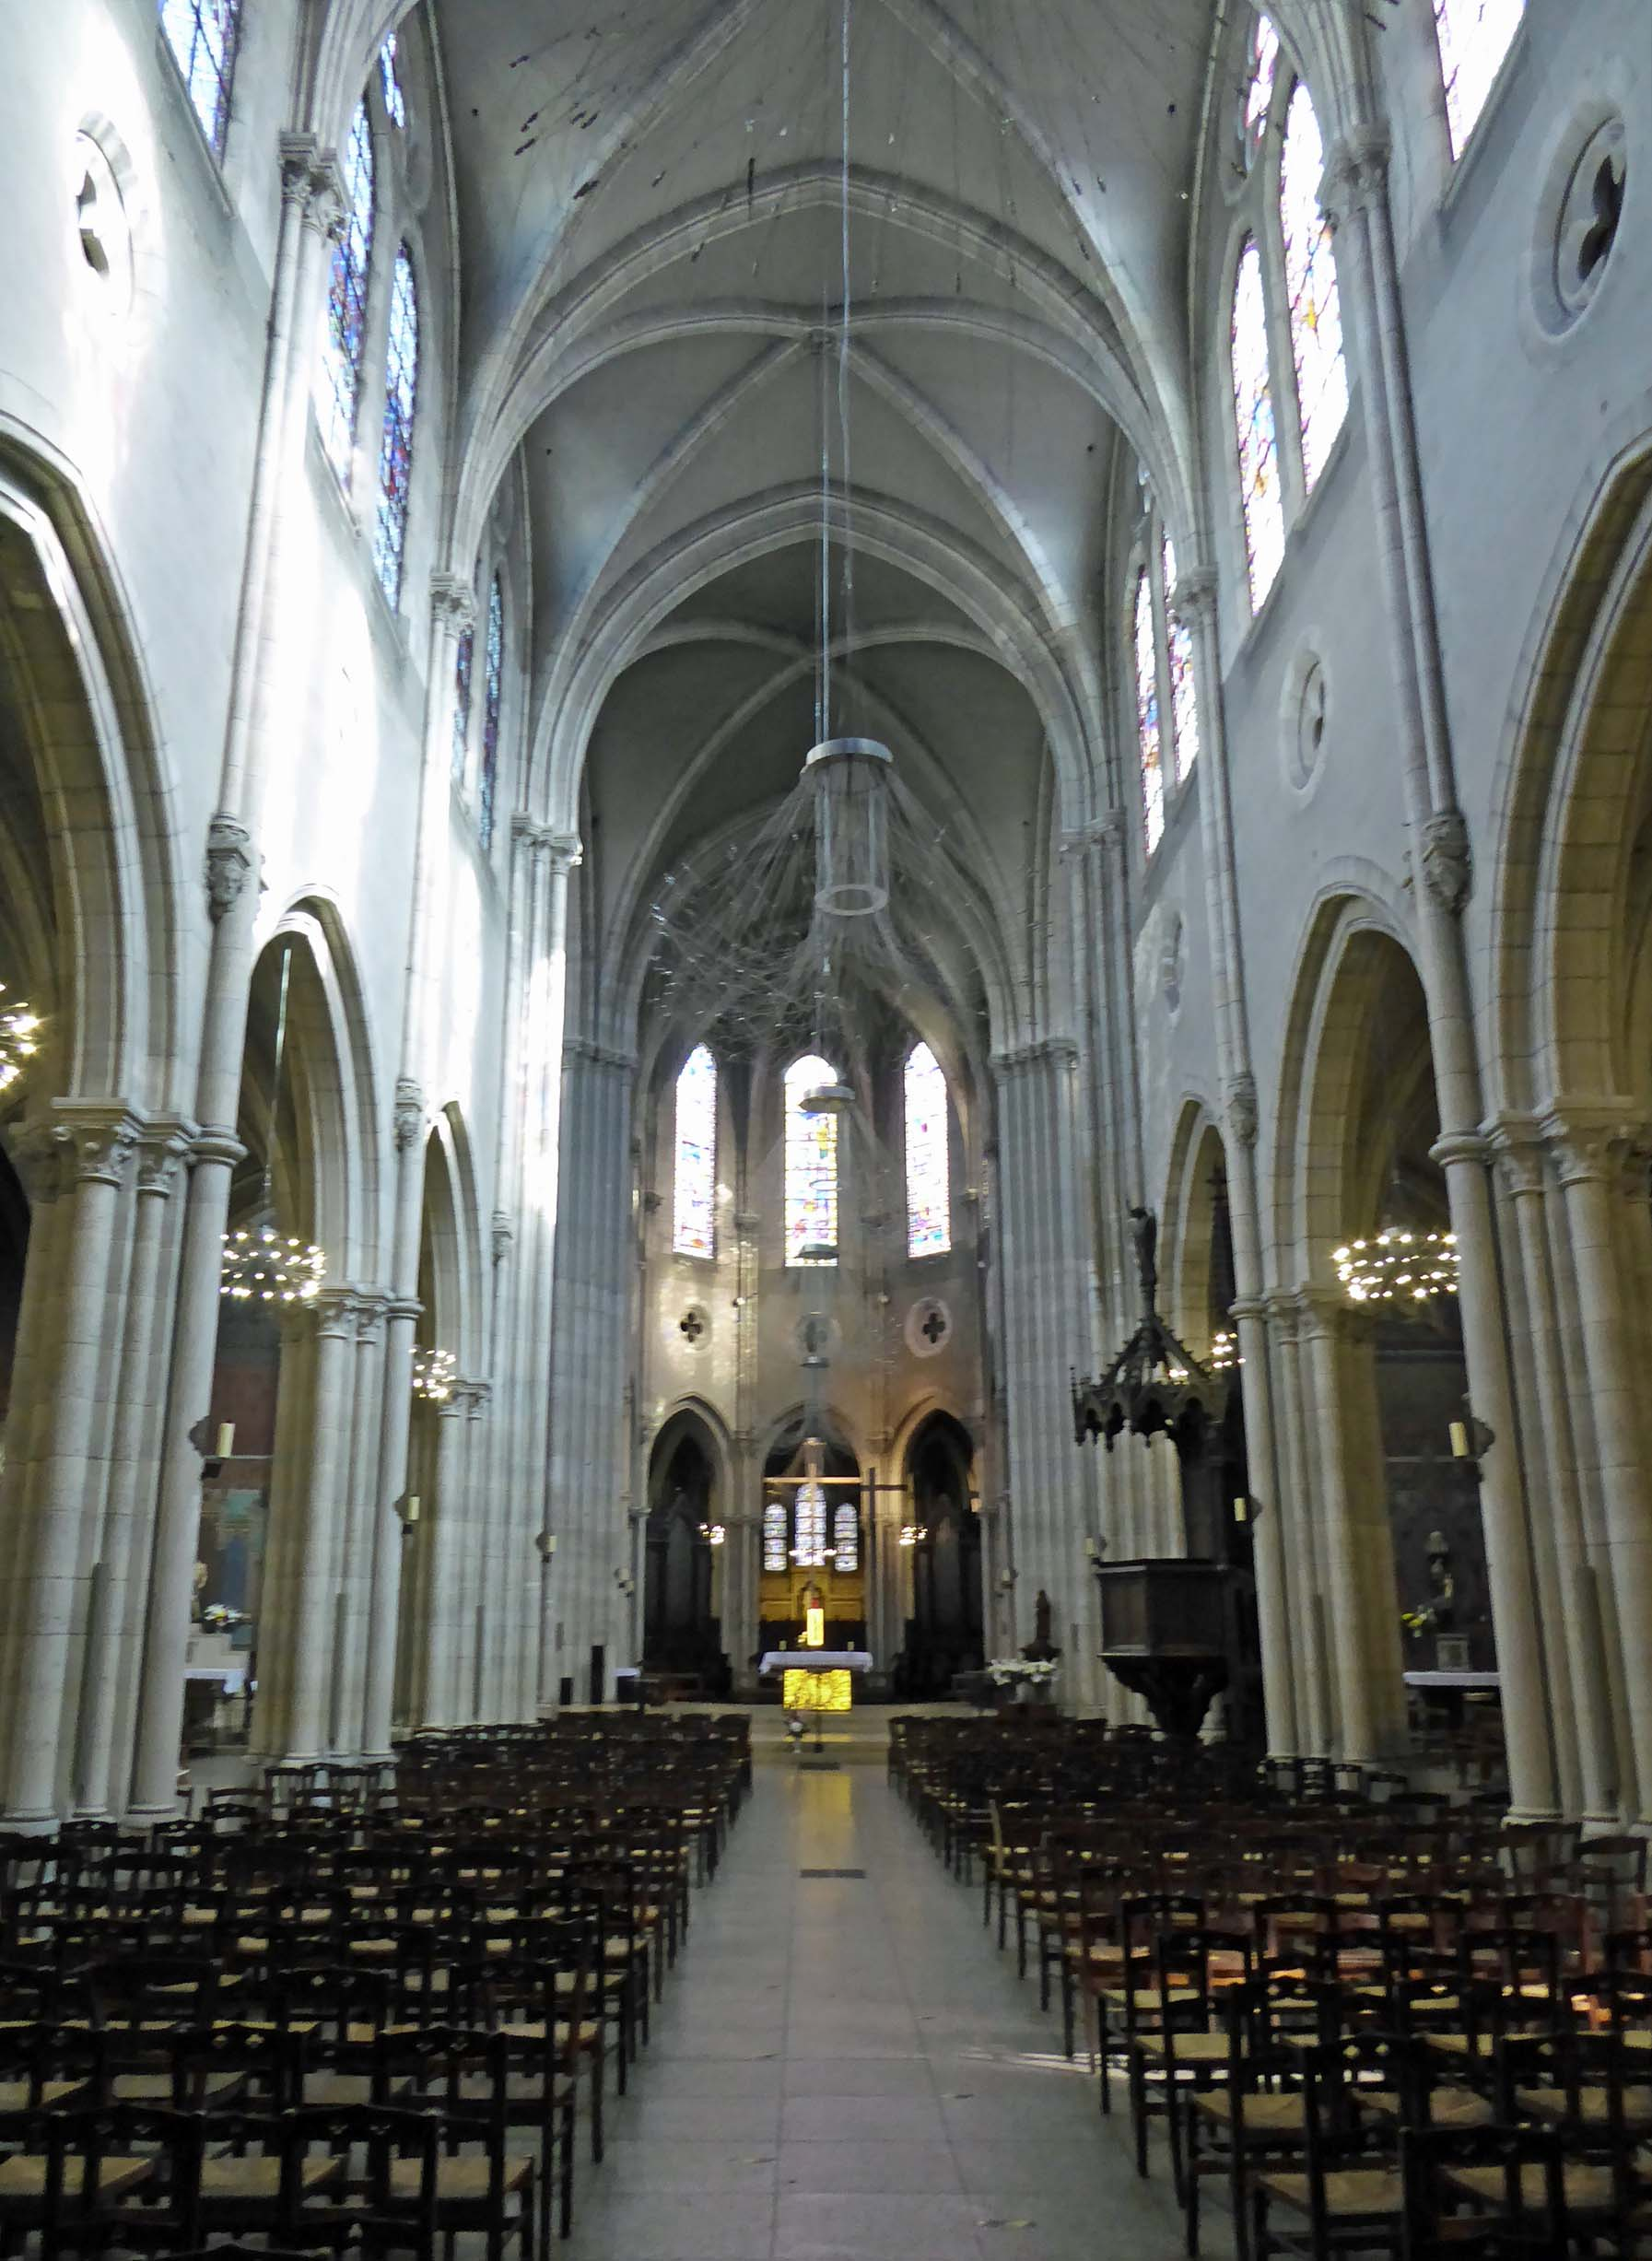 Looking the length of a church nave towards the altar